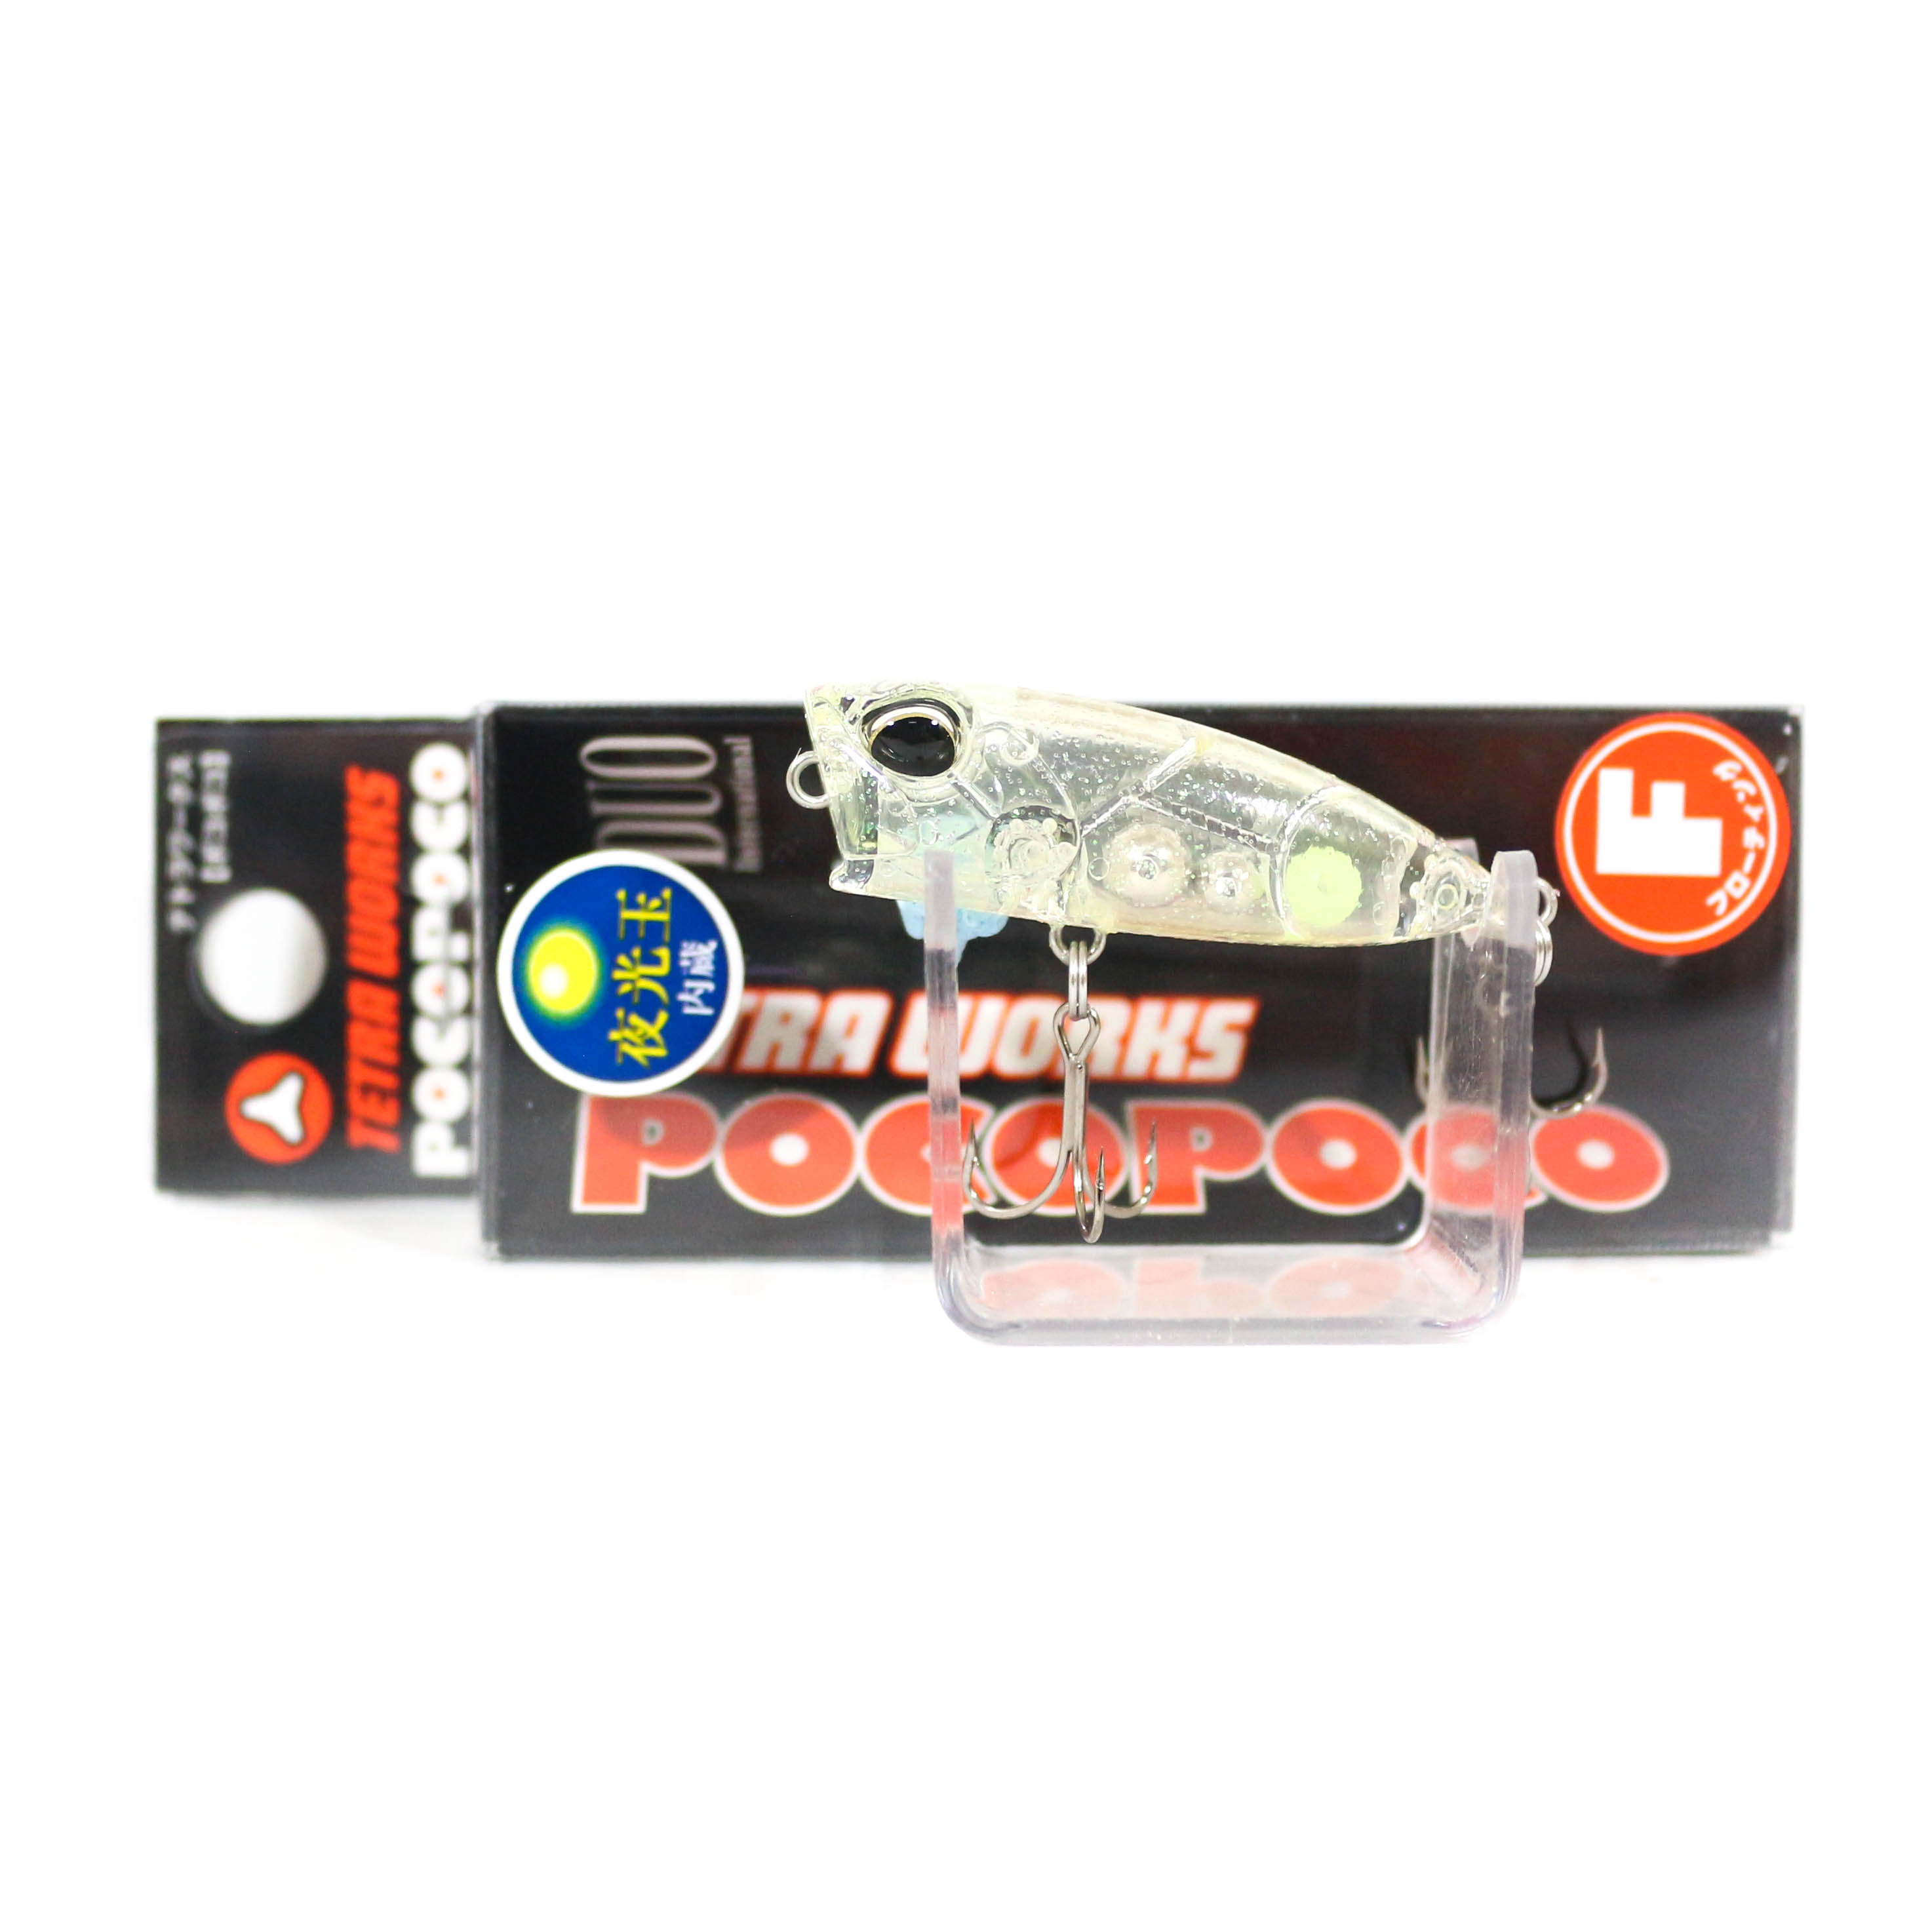 Duo Tetra Works Poco Poco Mini Popper 40 mm Floating Lure CCC0364 (3907)